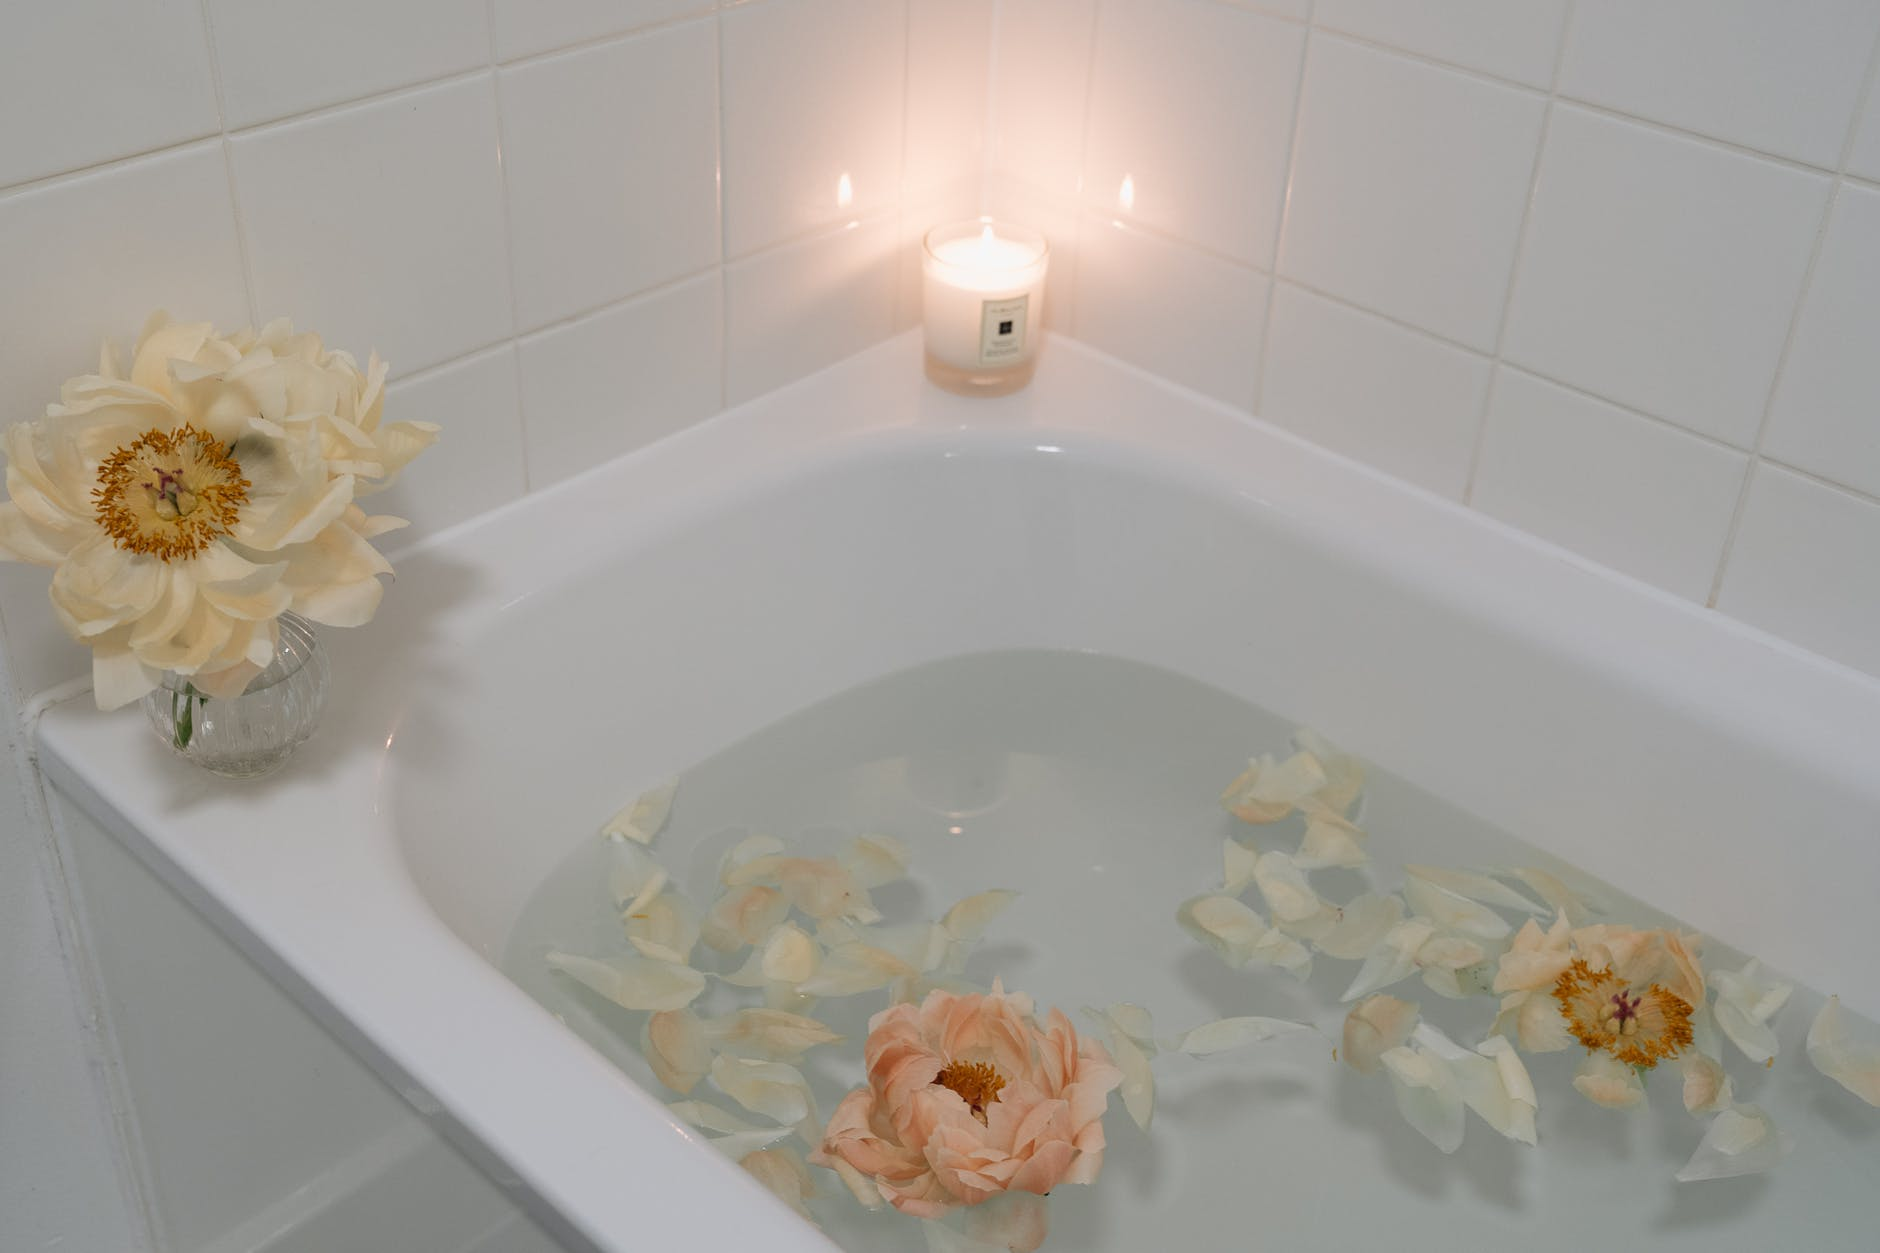 flowers in a bath - ideas to upcycle tea leaves and tea bags